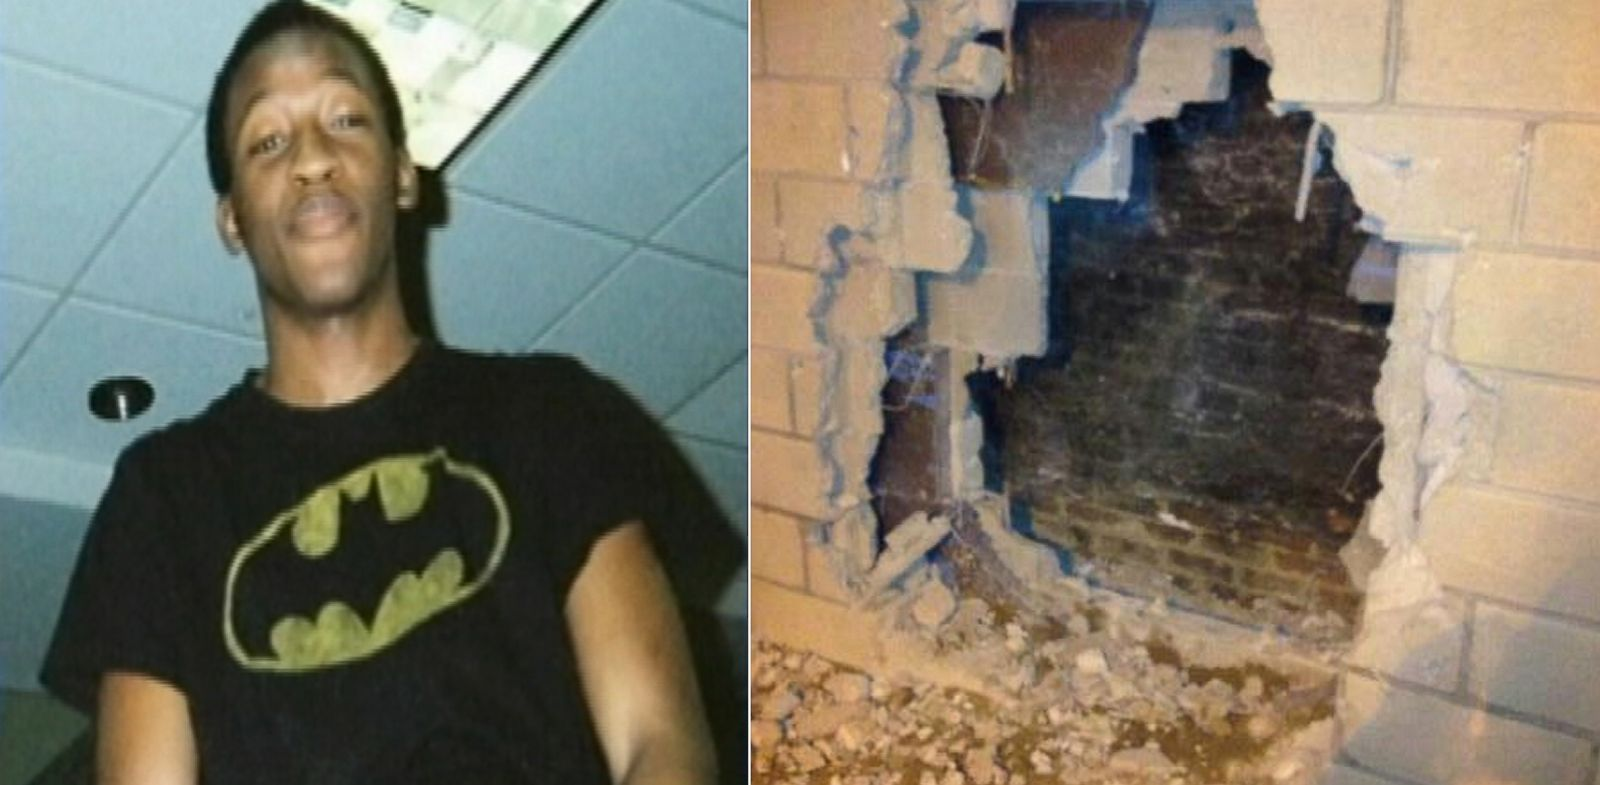 PHOTO: At left, Asher Vongatu; at right, the hole in the wall that was cut in order to retrieve him